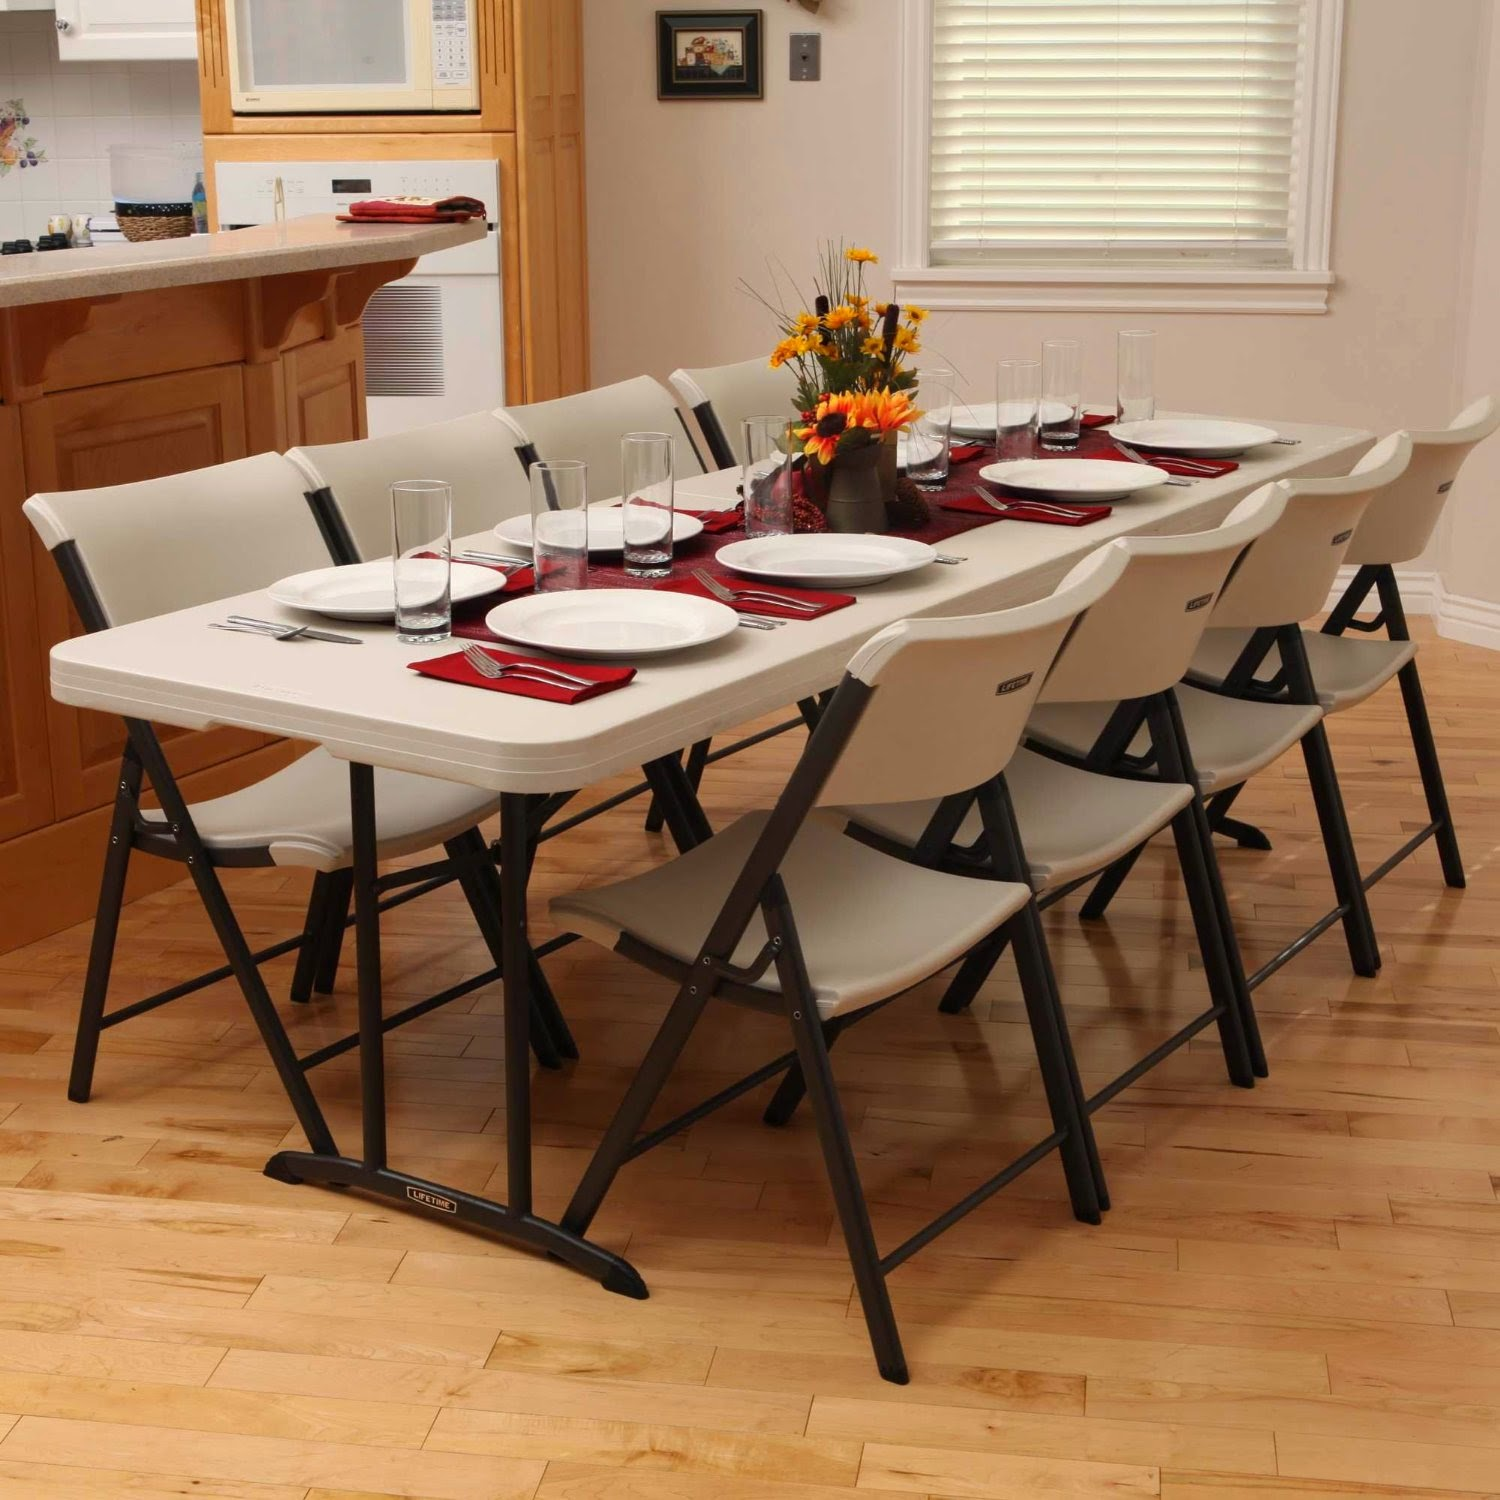 8 Foot Folding Table Gallery Of Ft With